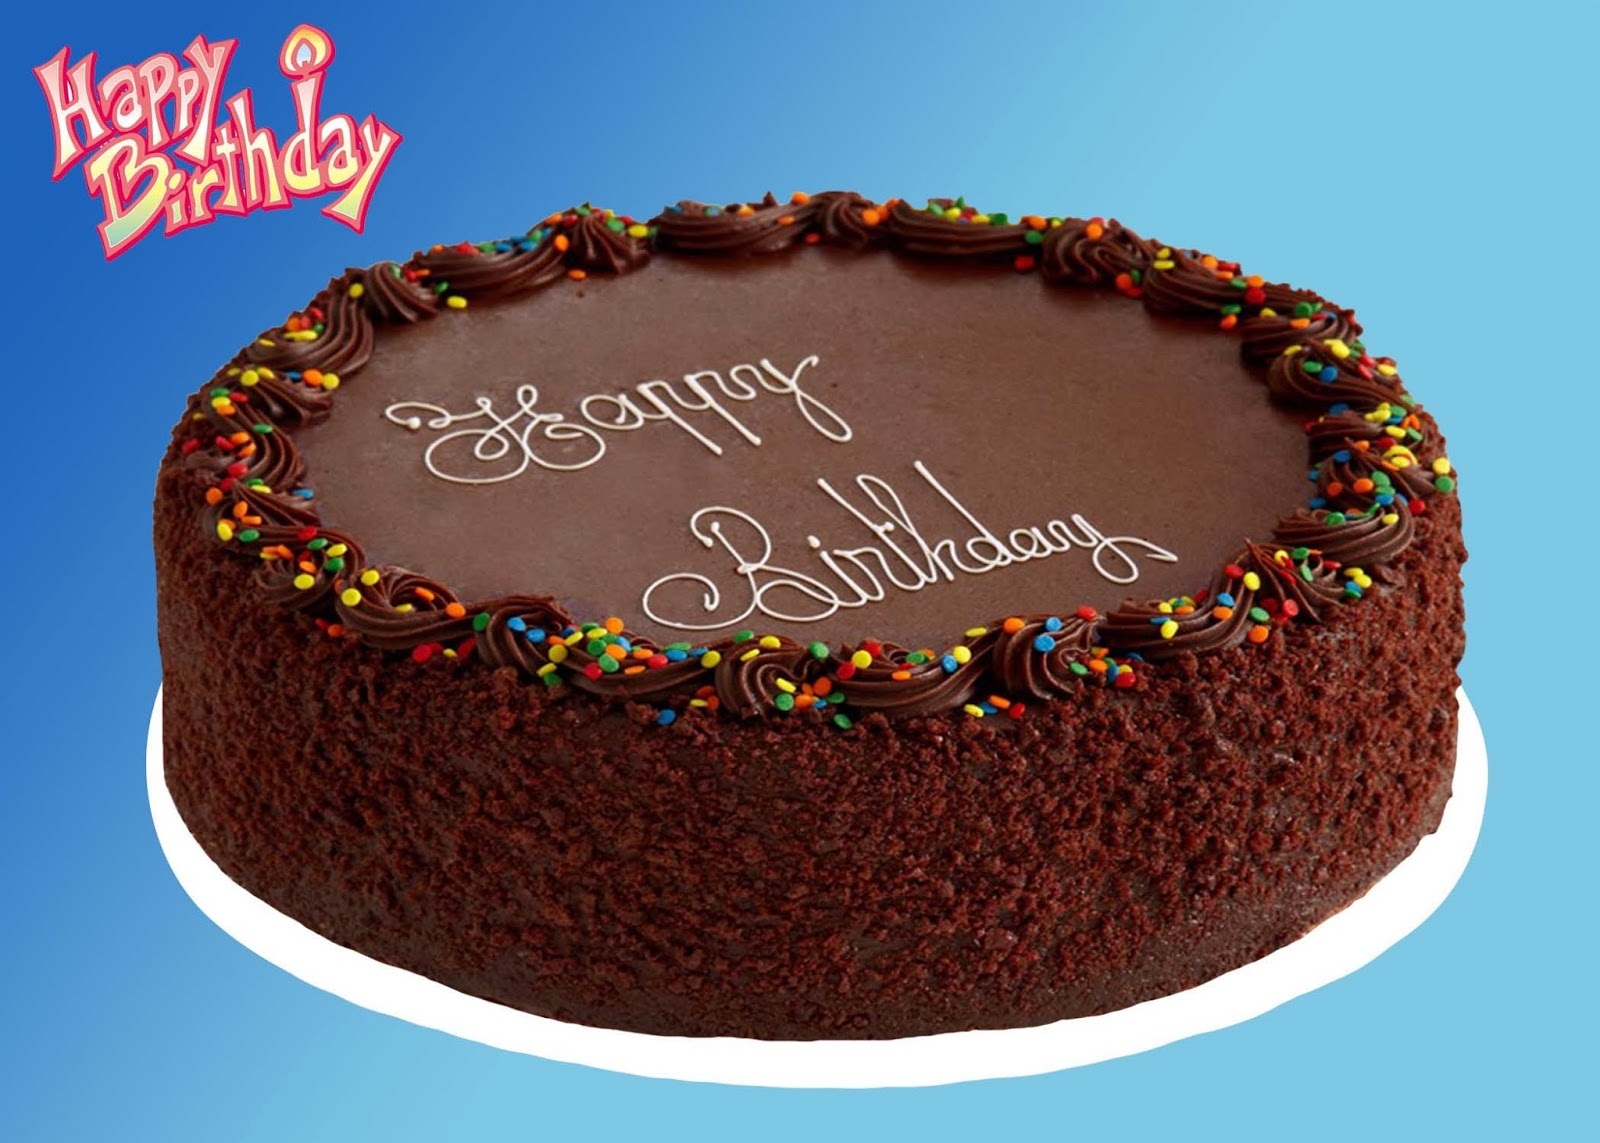 Happy-Birthday-Chocolate-Cake-Image-Wide